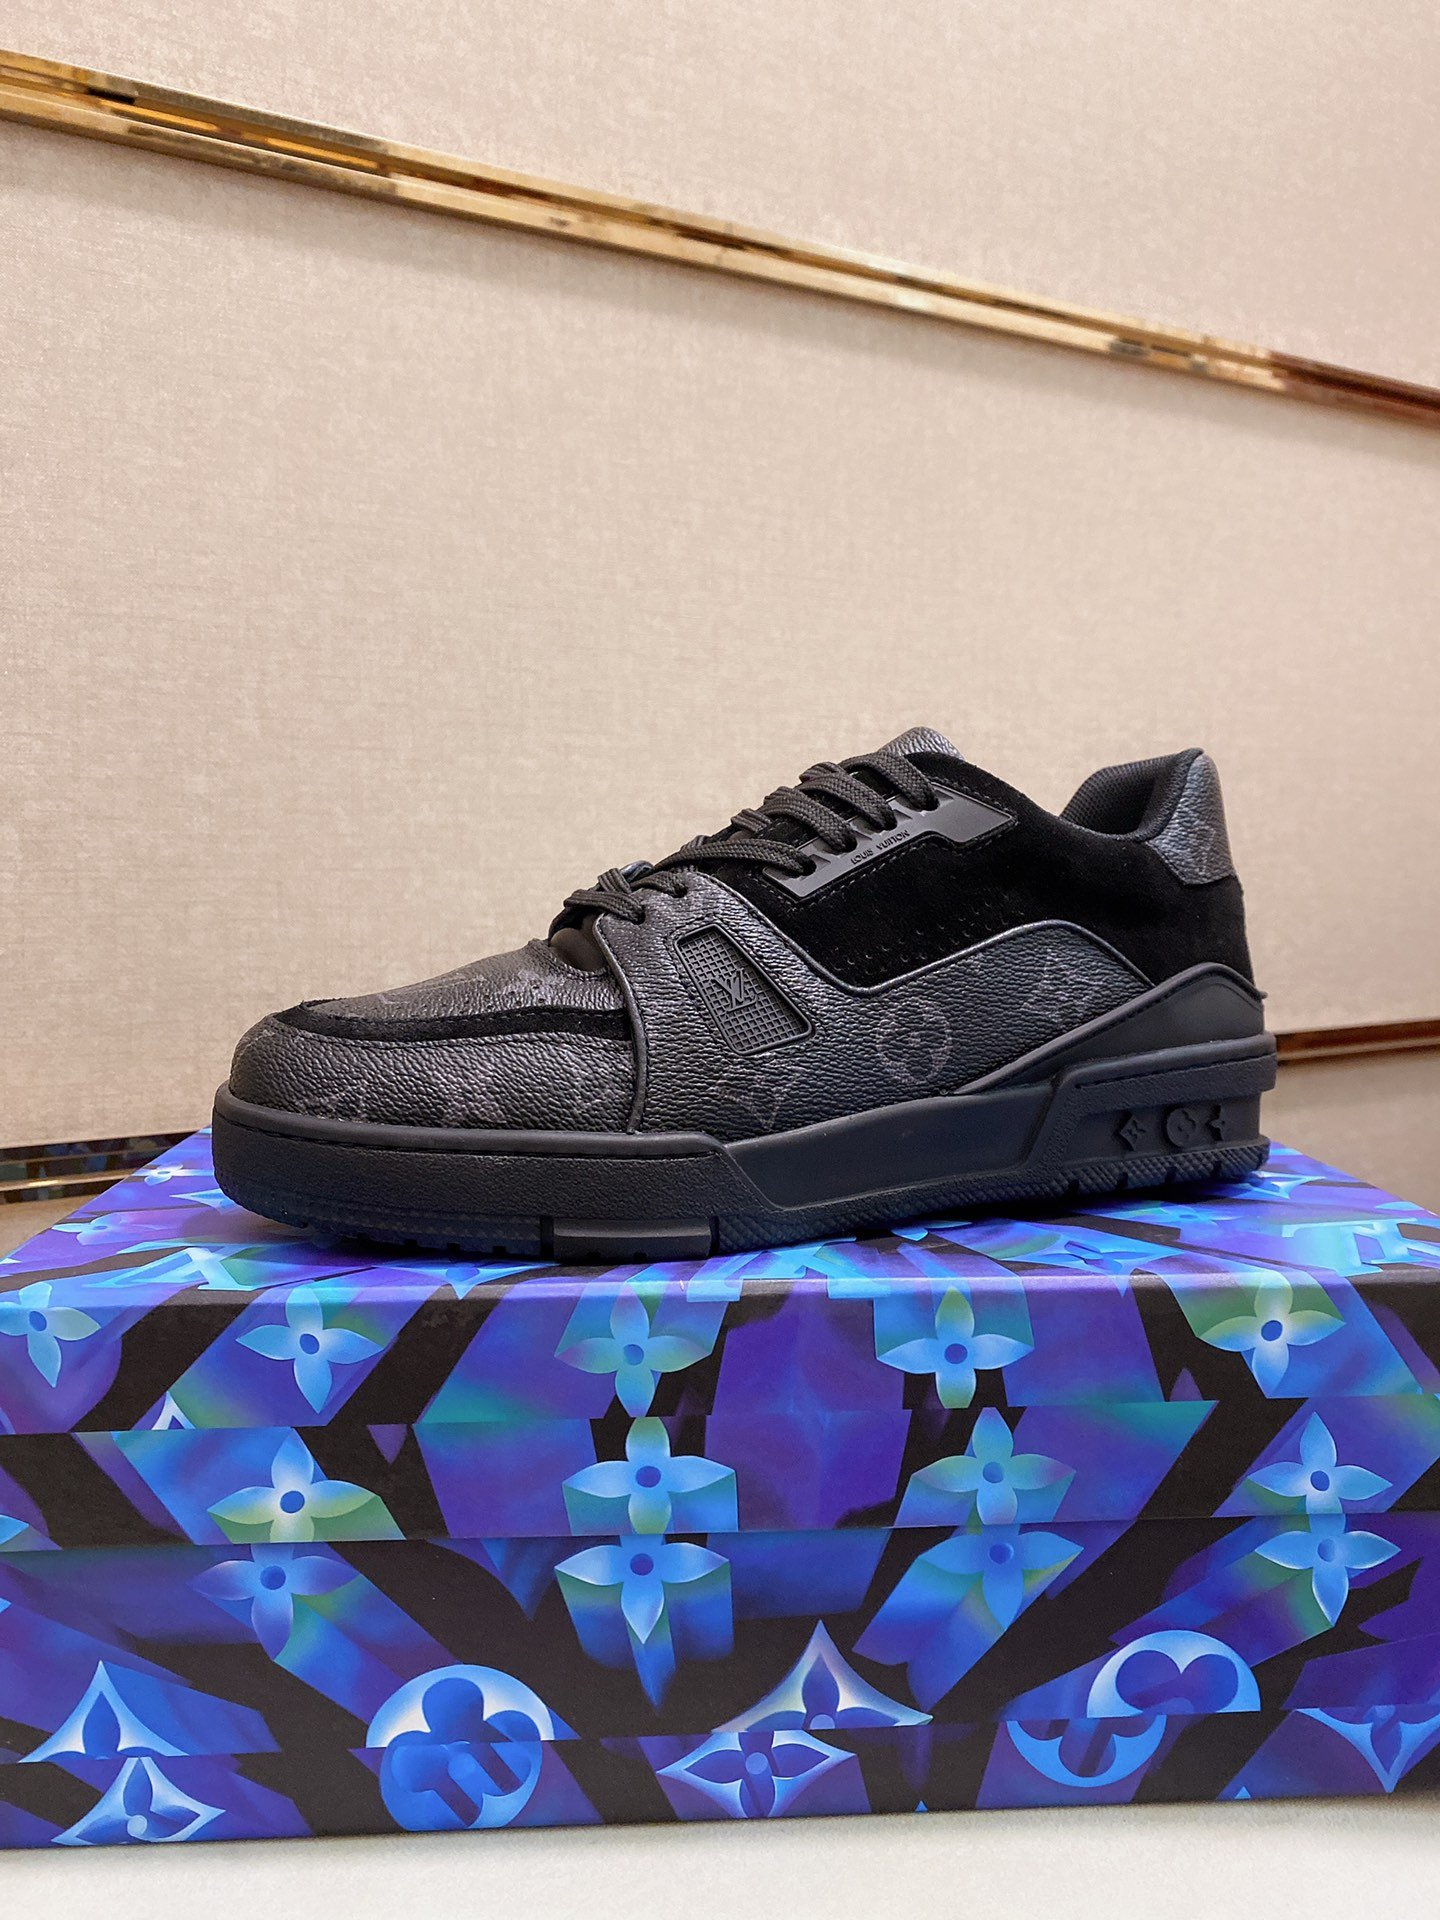 Image of LV2021 Men Fashion Boots fashionable Casual leather Breathable Sneakers Running Shoes0517pp